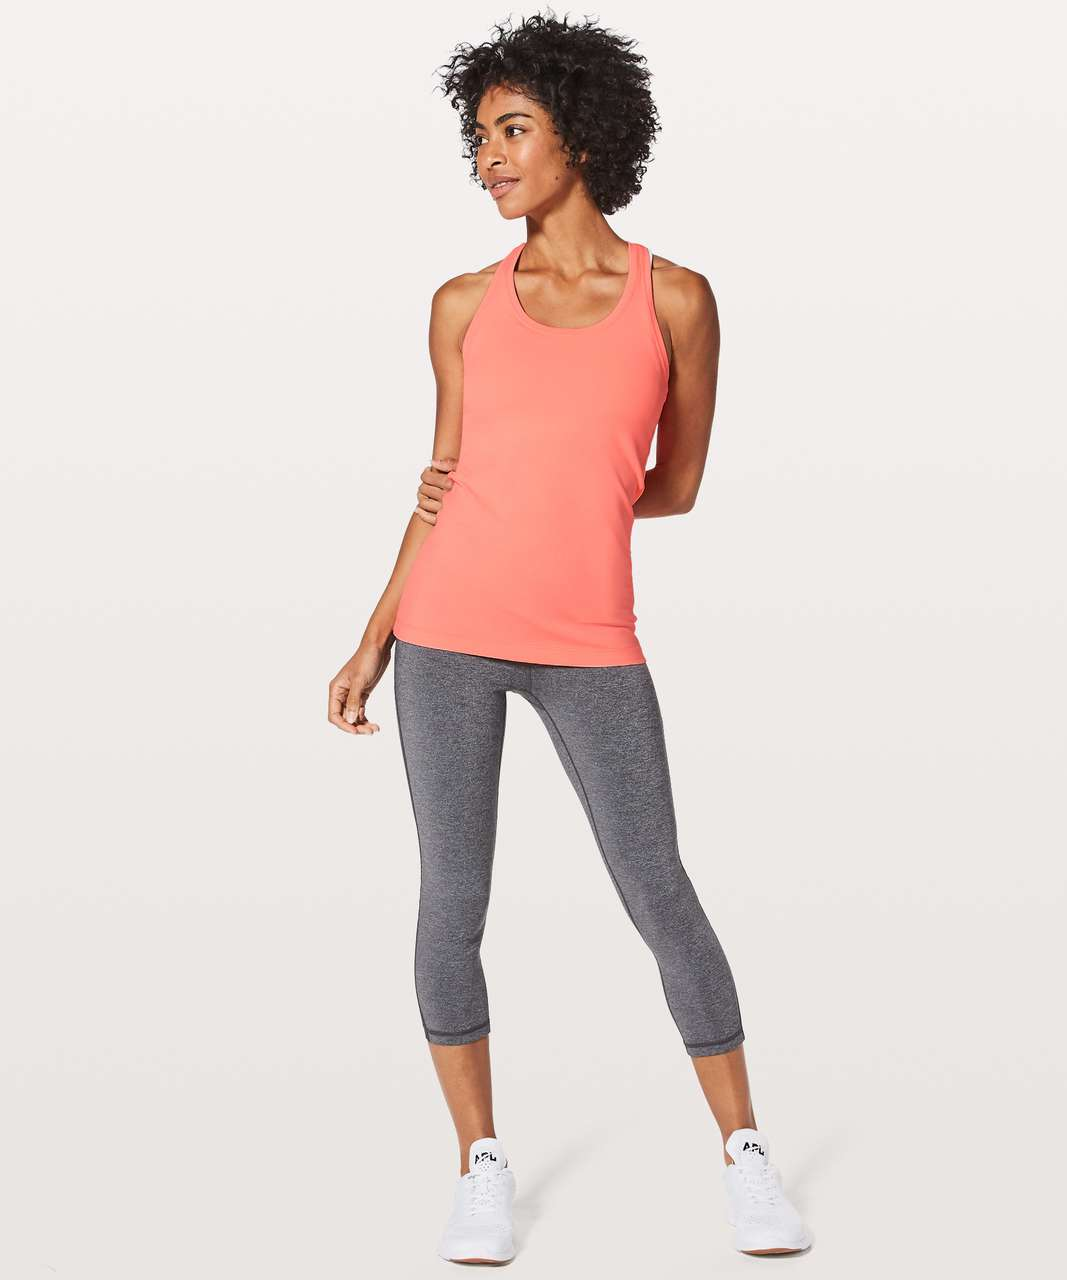 Lululemon Cool Racerback II - Sunset